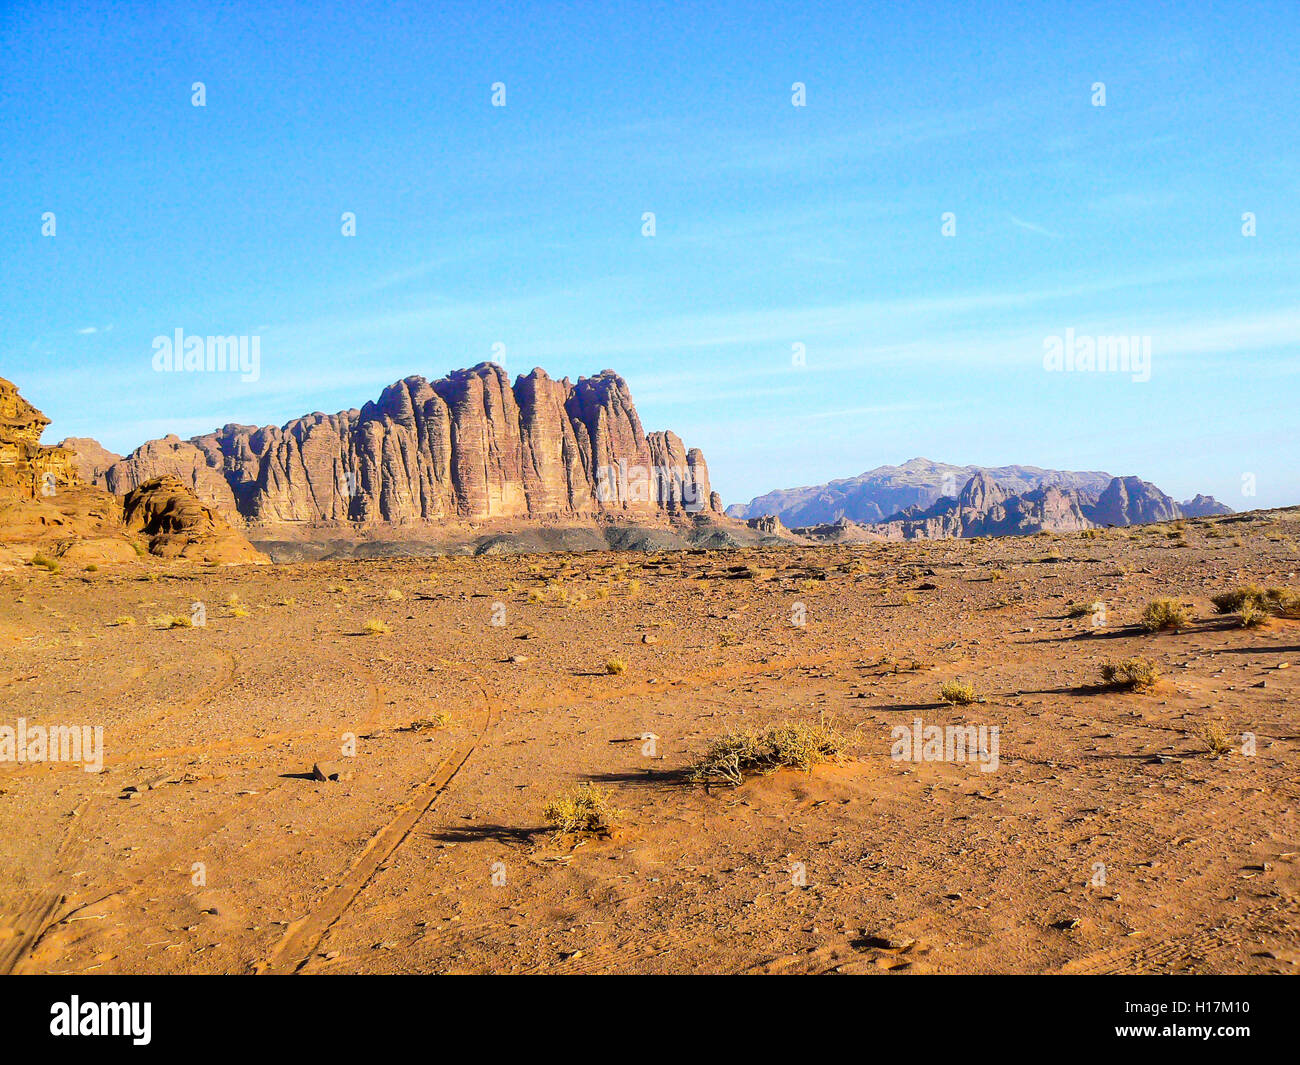 The Seven Pillars of Wisdom in the Desert of Wadi Rum, Jordan - Stock Image